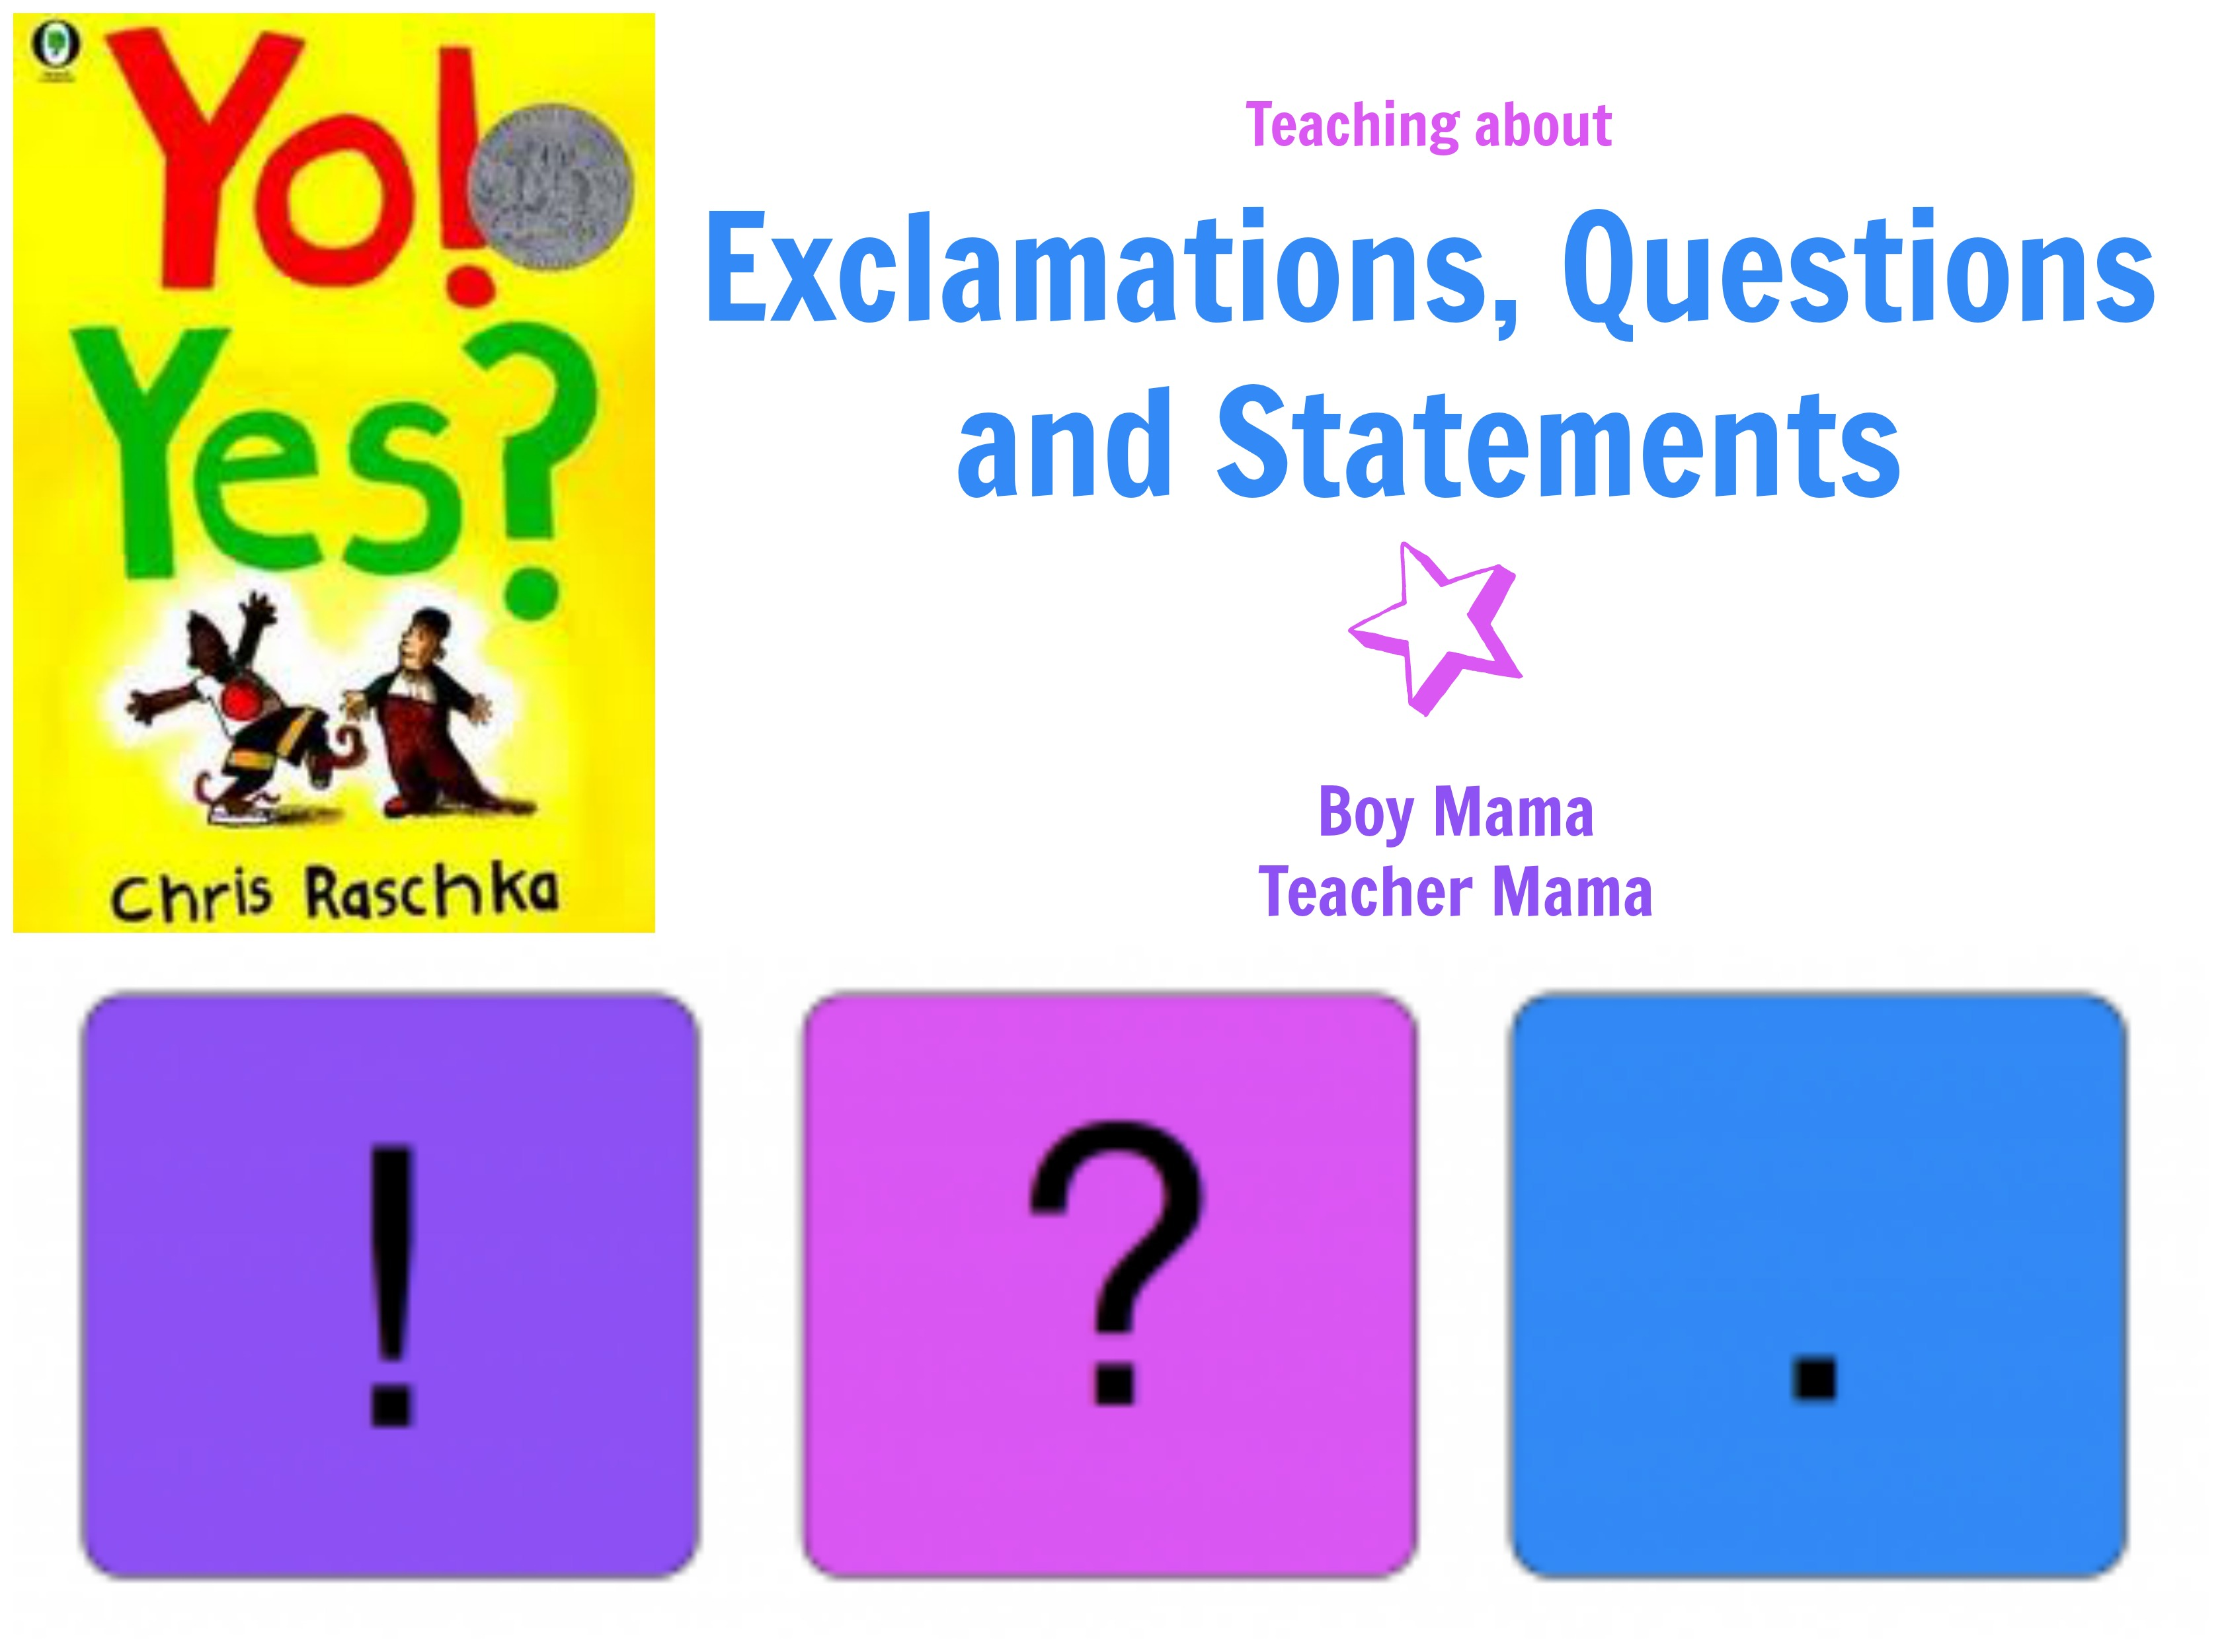 Boy Mama Teacher Mama Statement Exclamation And